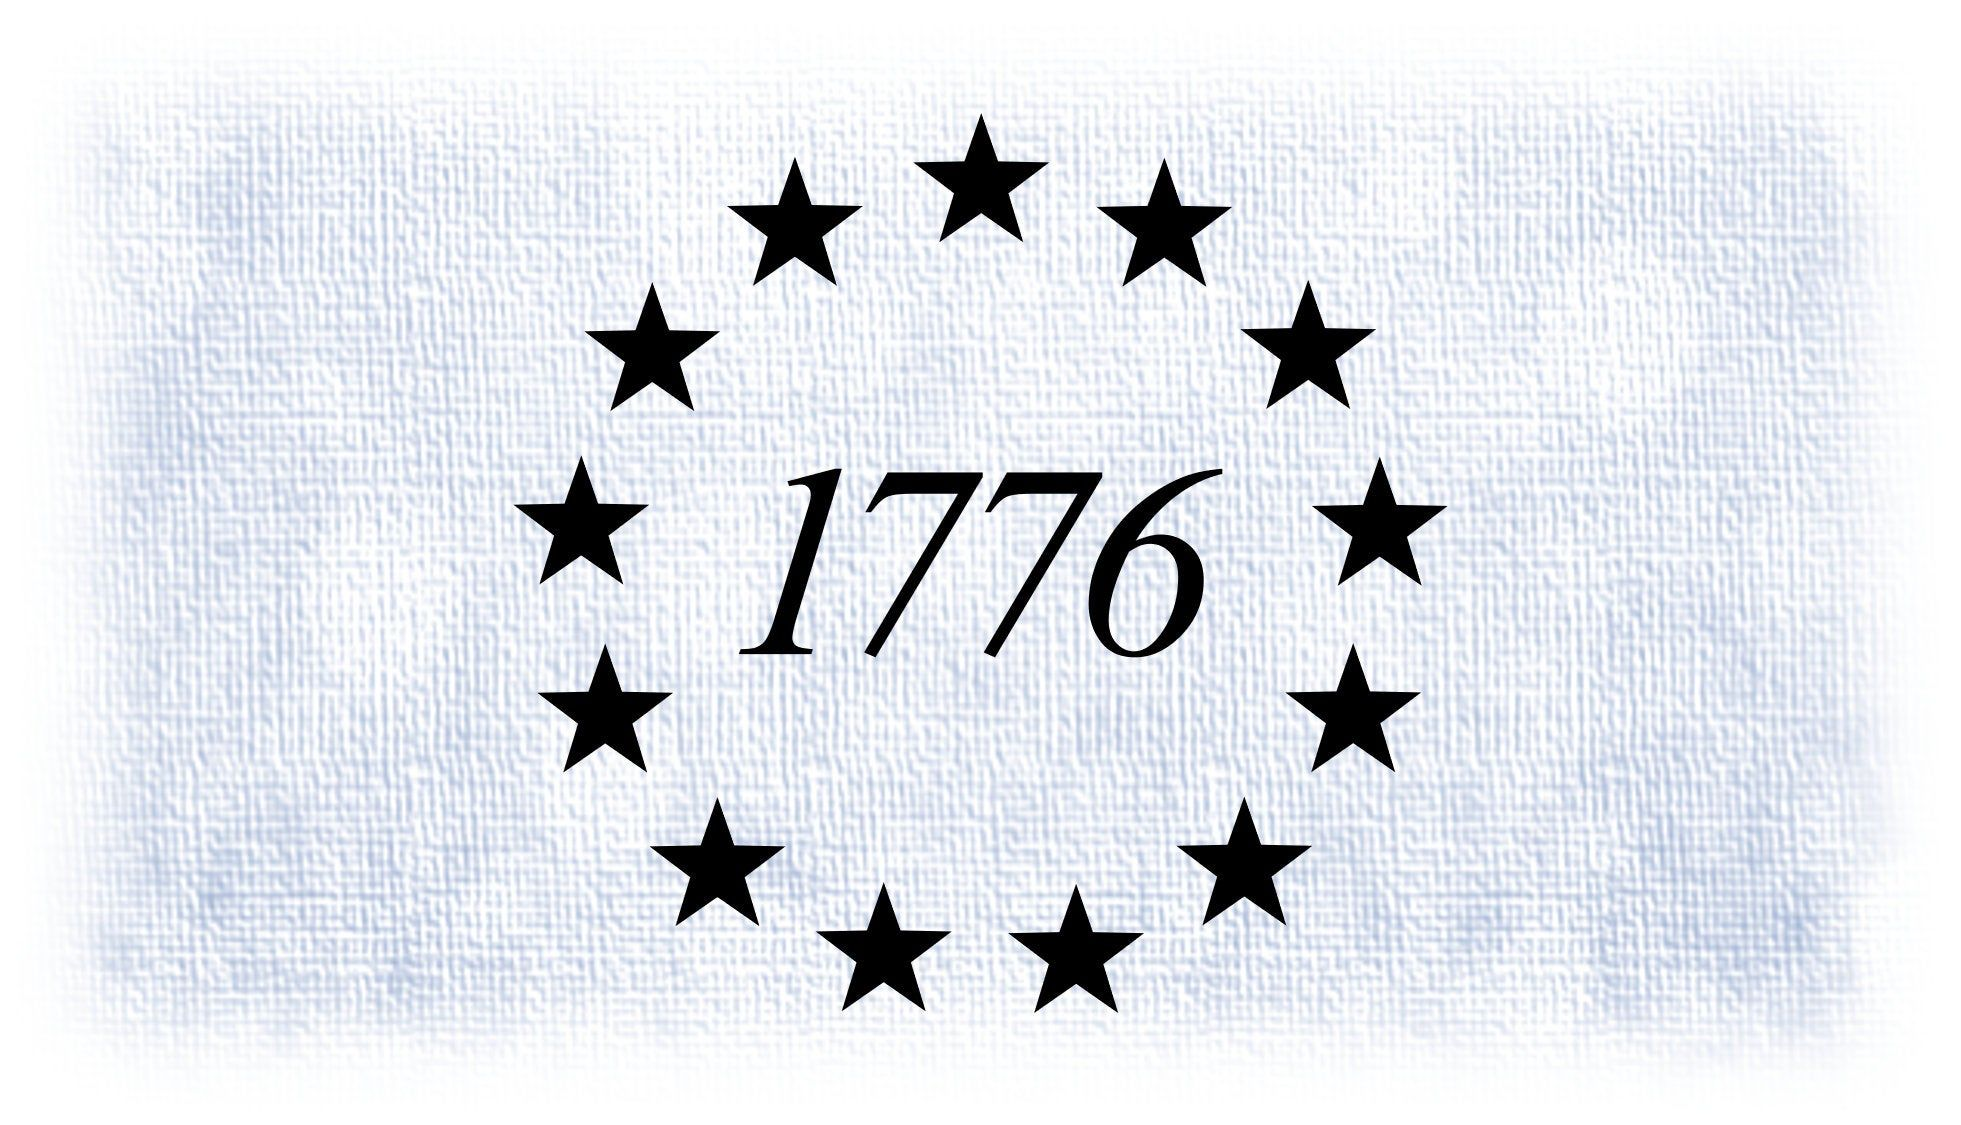 Shape Clipart 1776 Independence Day Date Year Encircled With Etsy In 2021 Independence Day Date Patriotic Pictures Clip Art